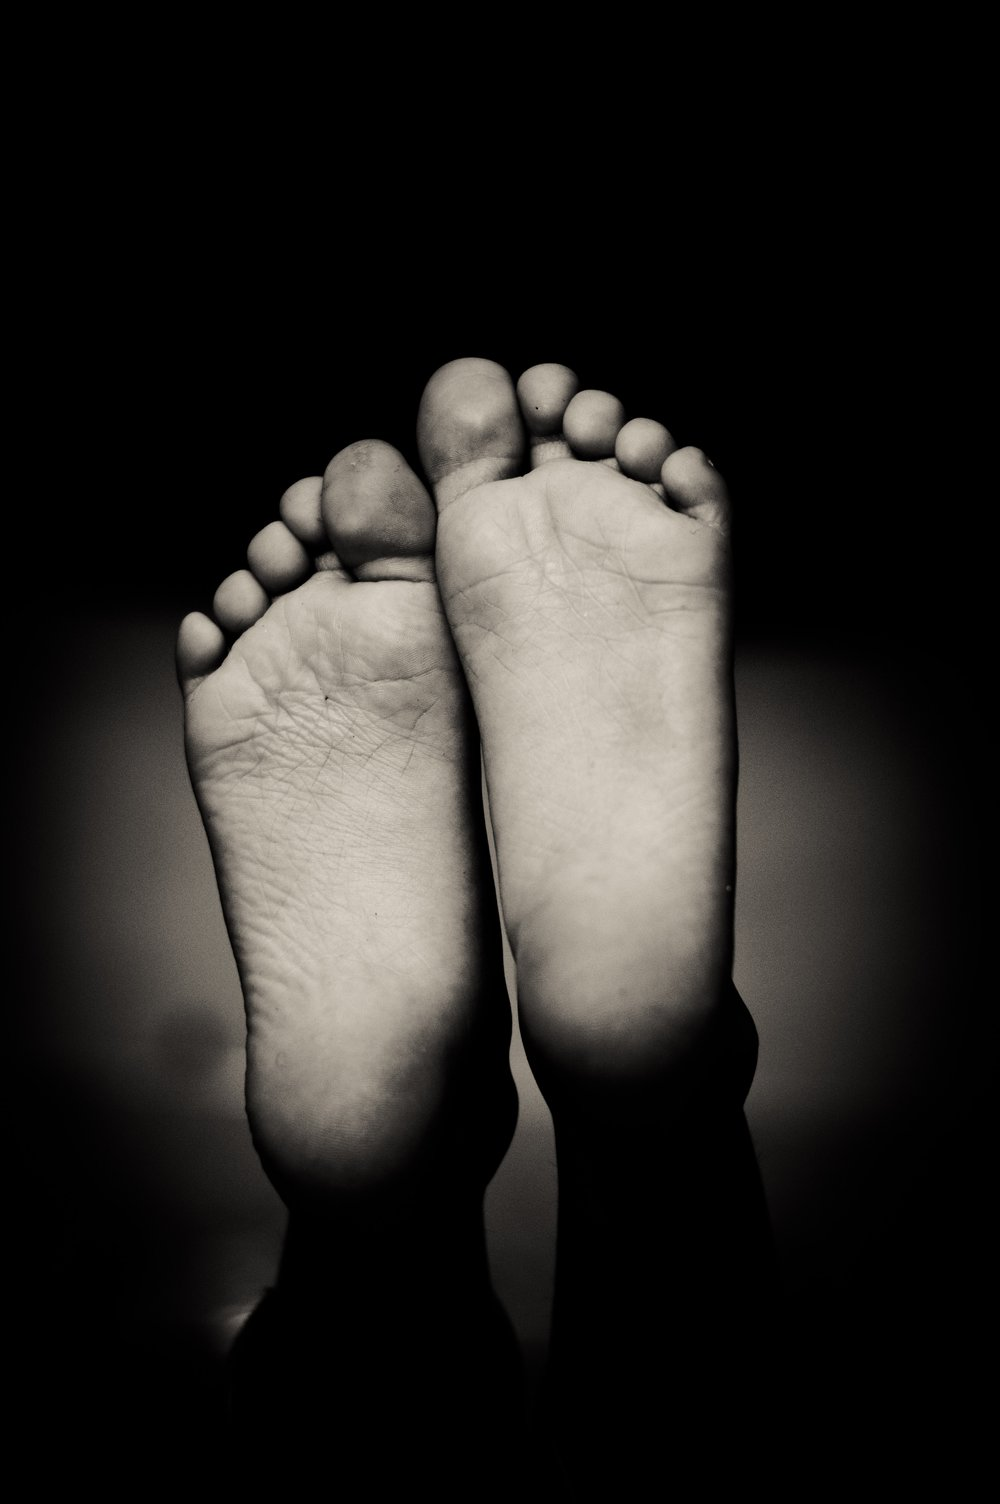 foot reflexology pricing page picture.jpg